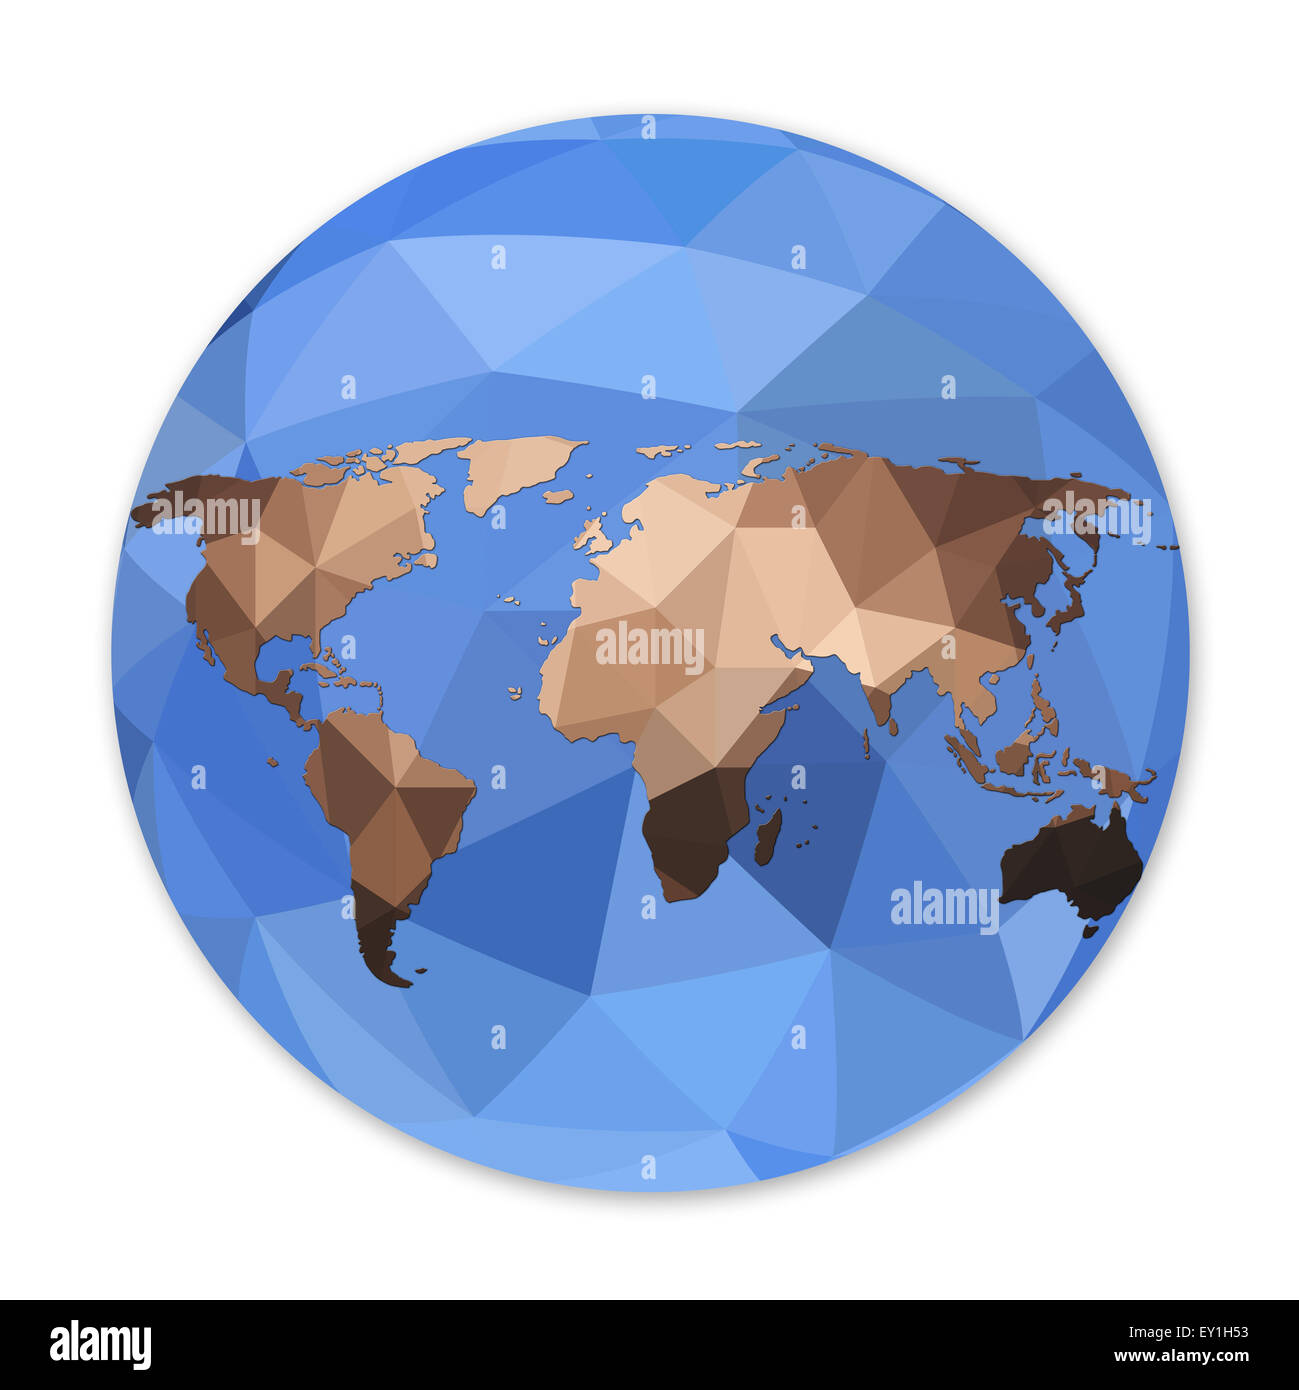 World globe map in polygonal style geometric structure isolated world globe map in polygonal style geometric structure isolated on white background gumiabroncs Gallery